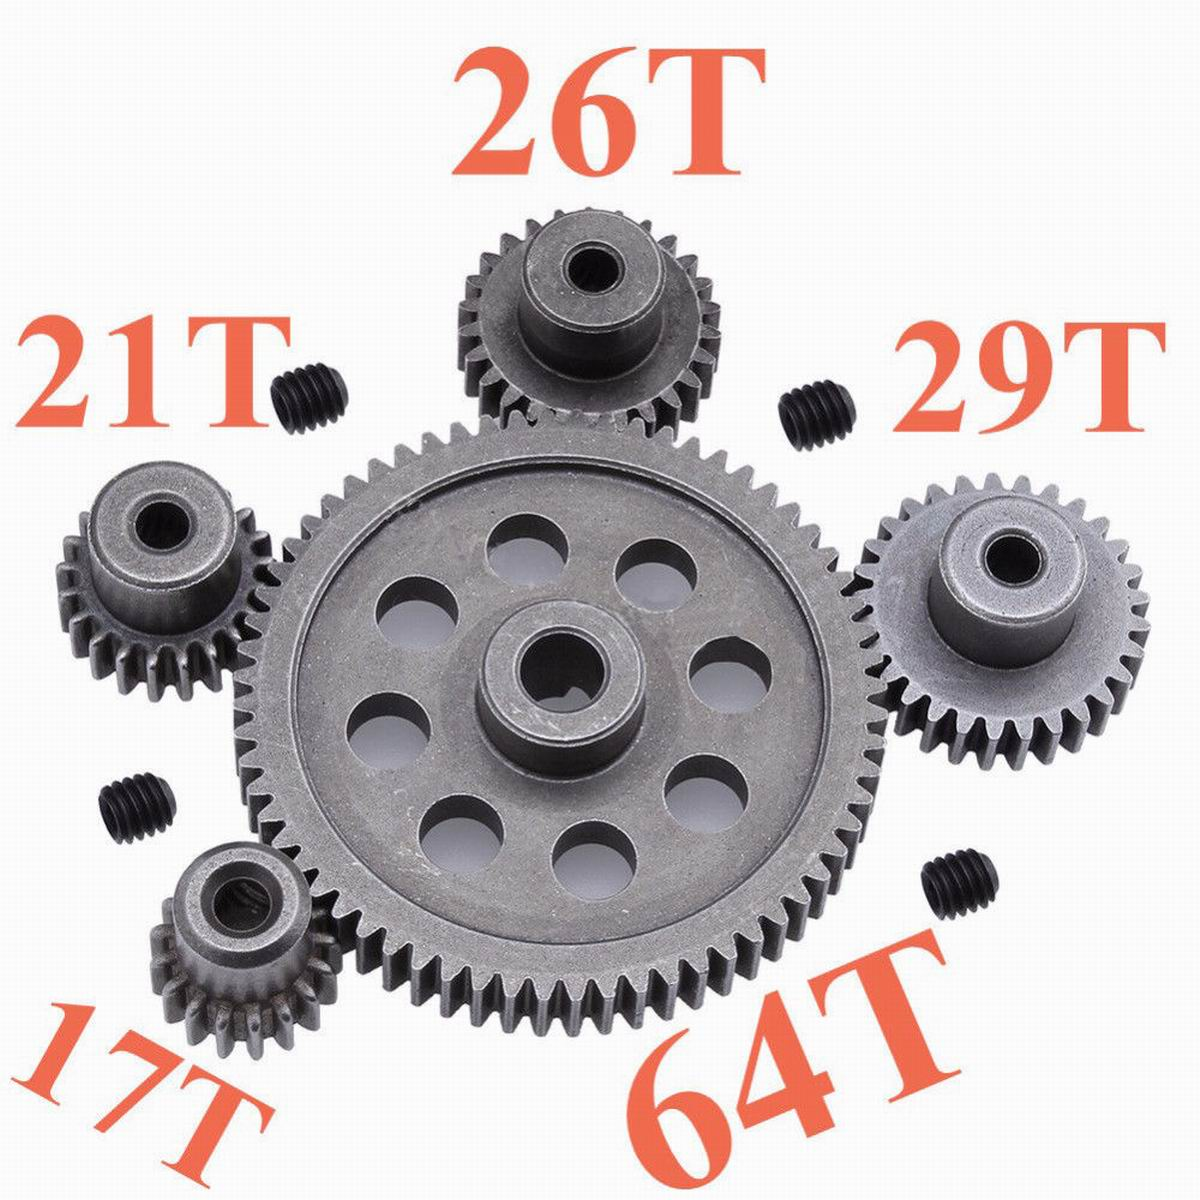 11184 Steel Metal Spur Diff Main Gear 64T Motor Pinion Gears 17T 21T 26T 29T 11189 11176 11181 11119 for RC HSP Redcat RC Truck hot sale rc 1 10th 11184 hsp 1 10 gear differential main gear 64t 11181 motor gear 21t teeth car truck